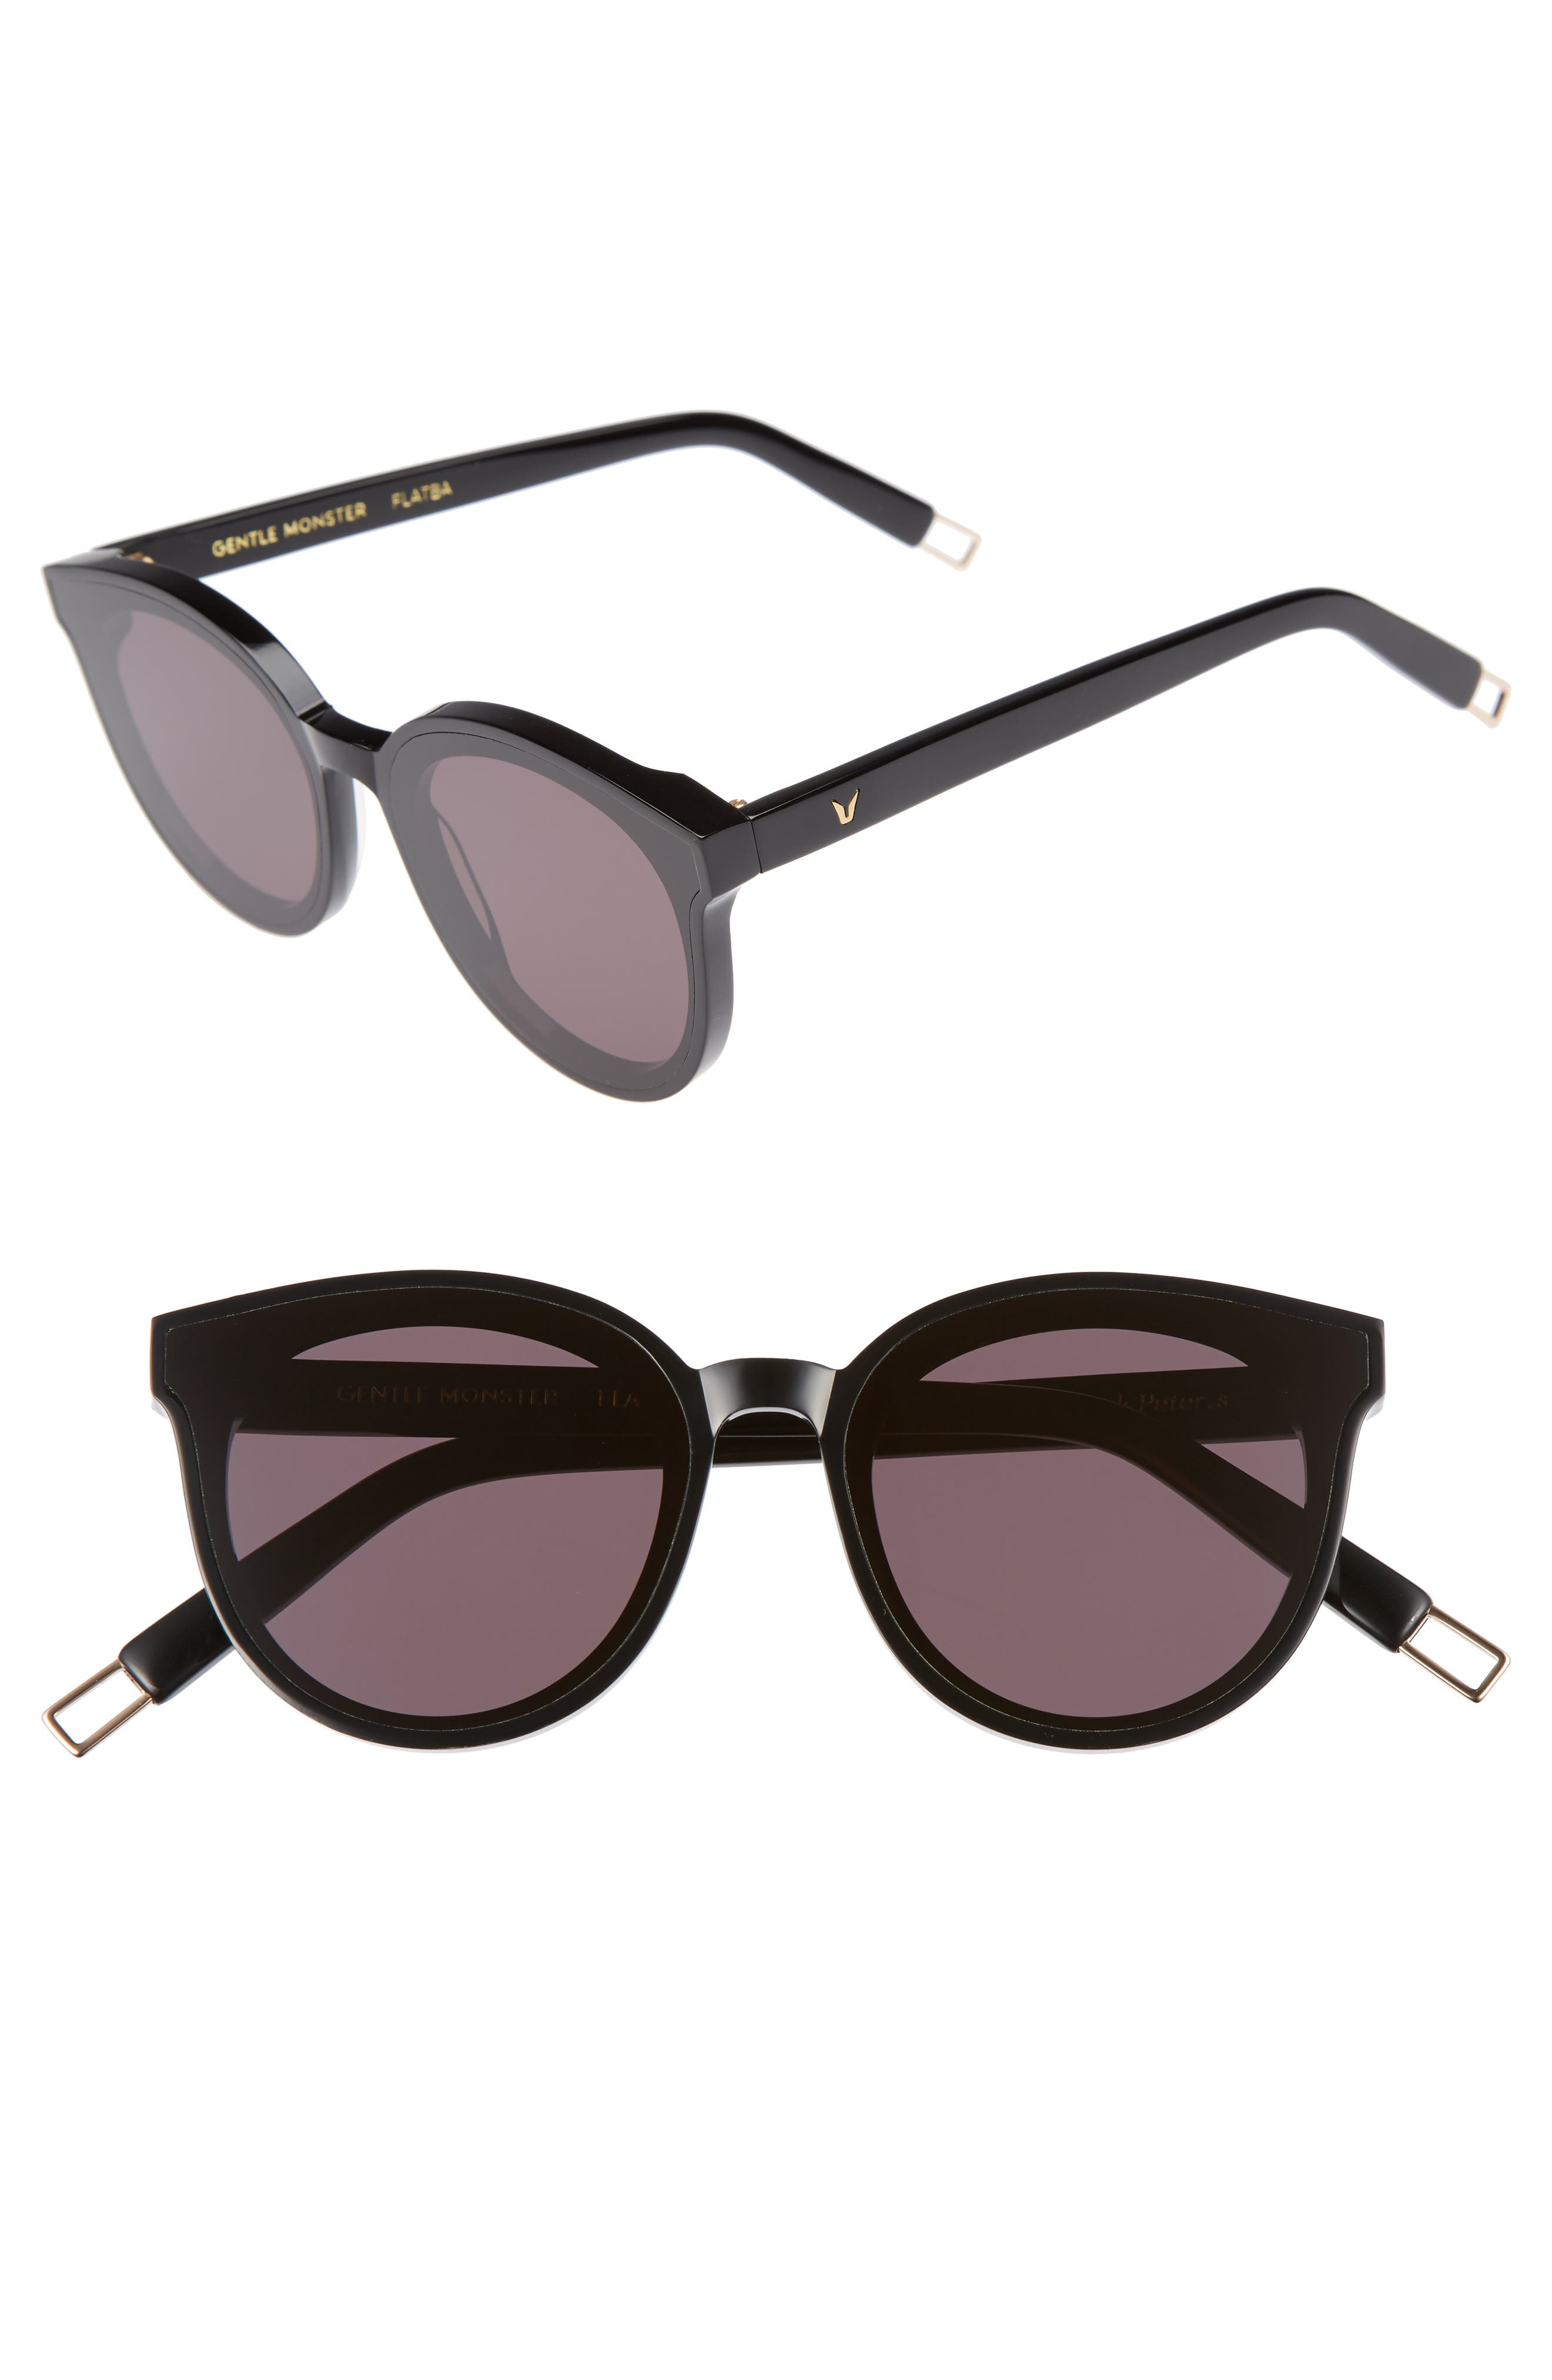 Black Peter 61mm Rounded Sunglasses,                         Main,                         color, 001